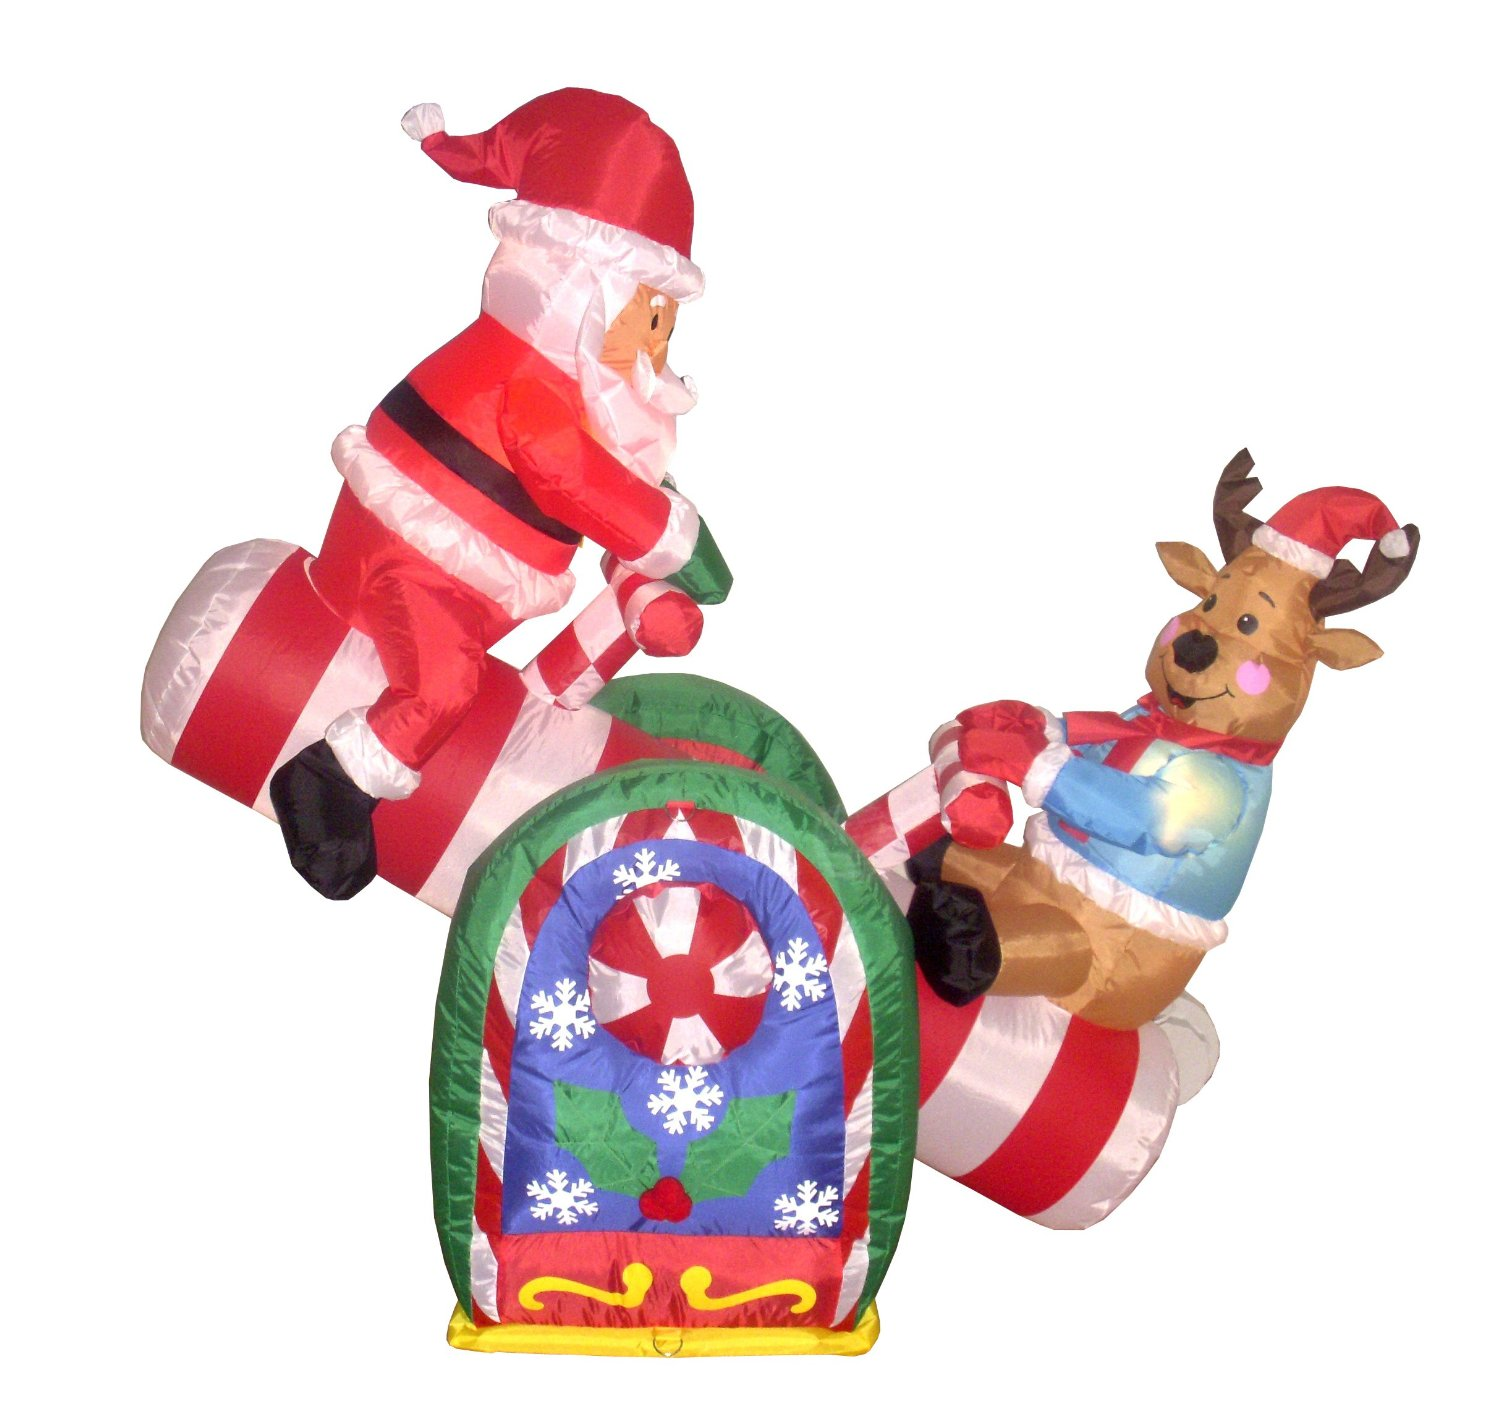 animated inflatable santa and reindeer on a teeter totter - Animated Christmas Ornaments